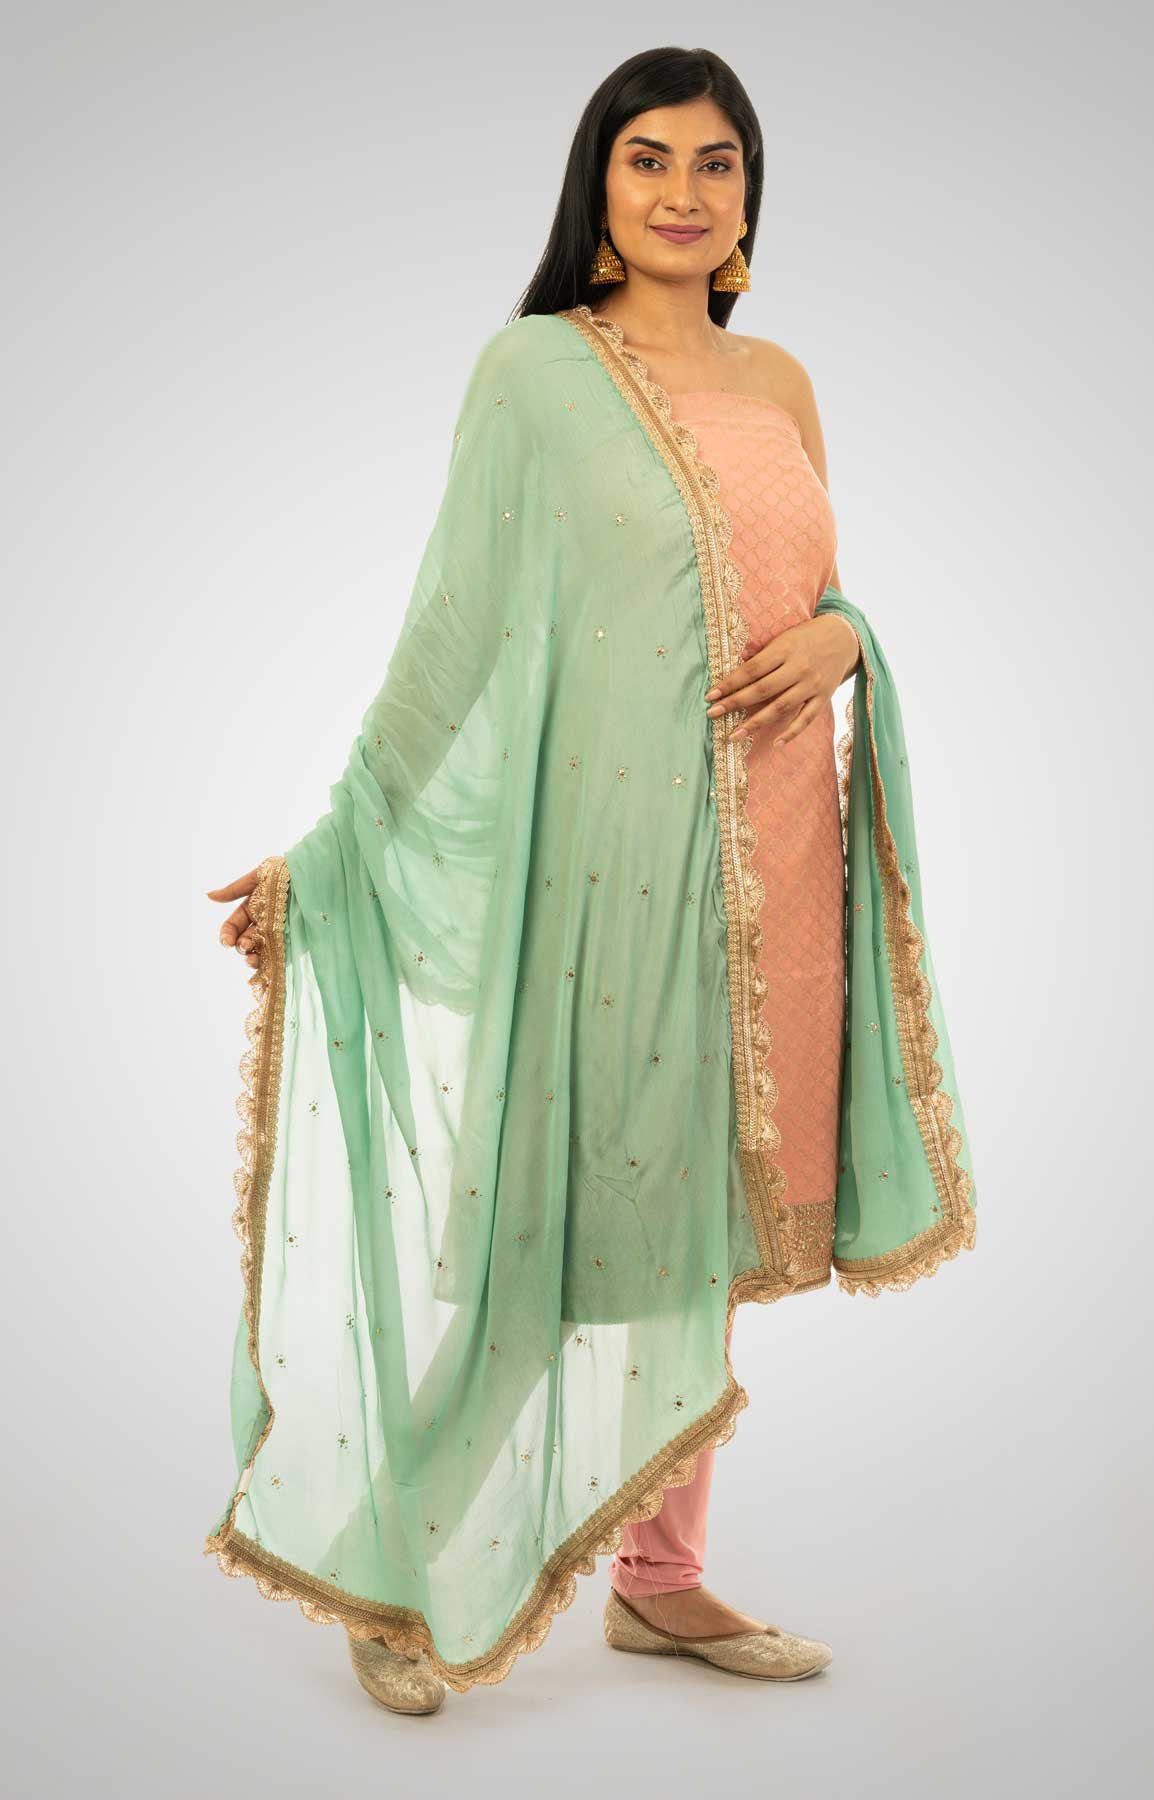 Peach And Sea Green Chanderi Unstitched Suit Fabric With Gotta Patti Border – Viraaya By Ushnakmals